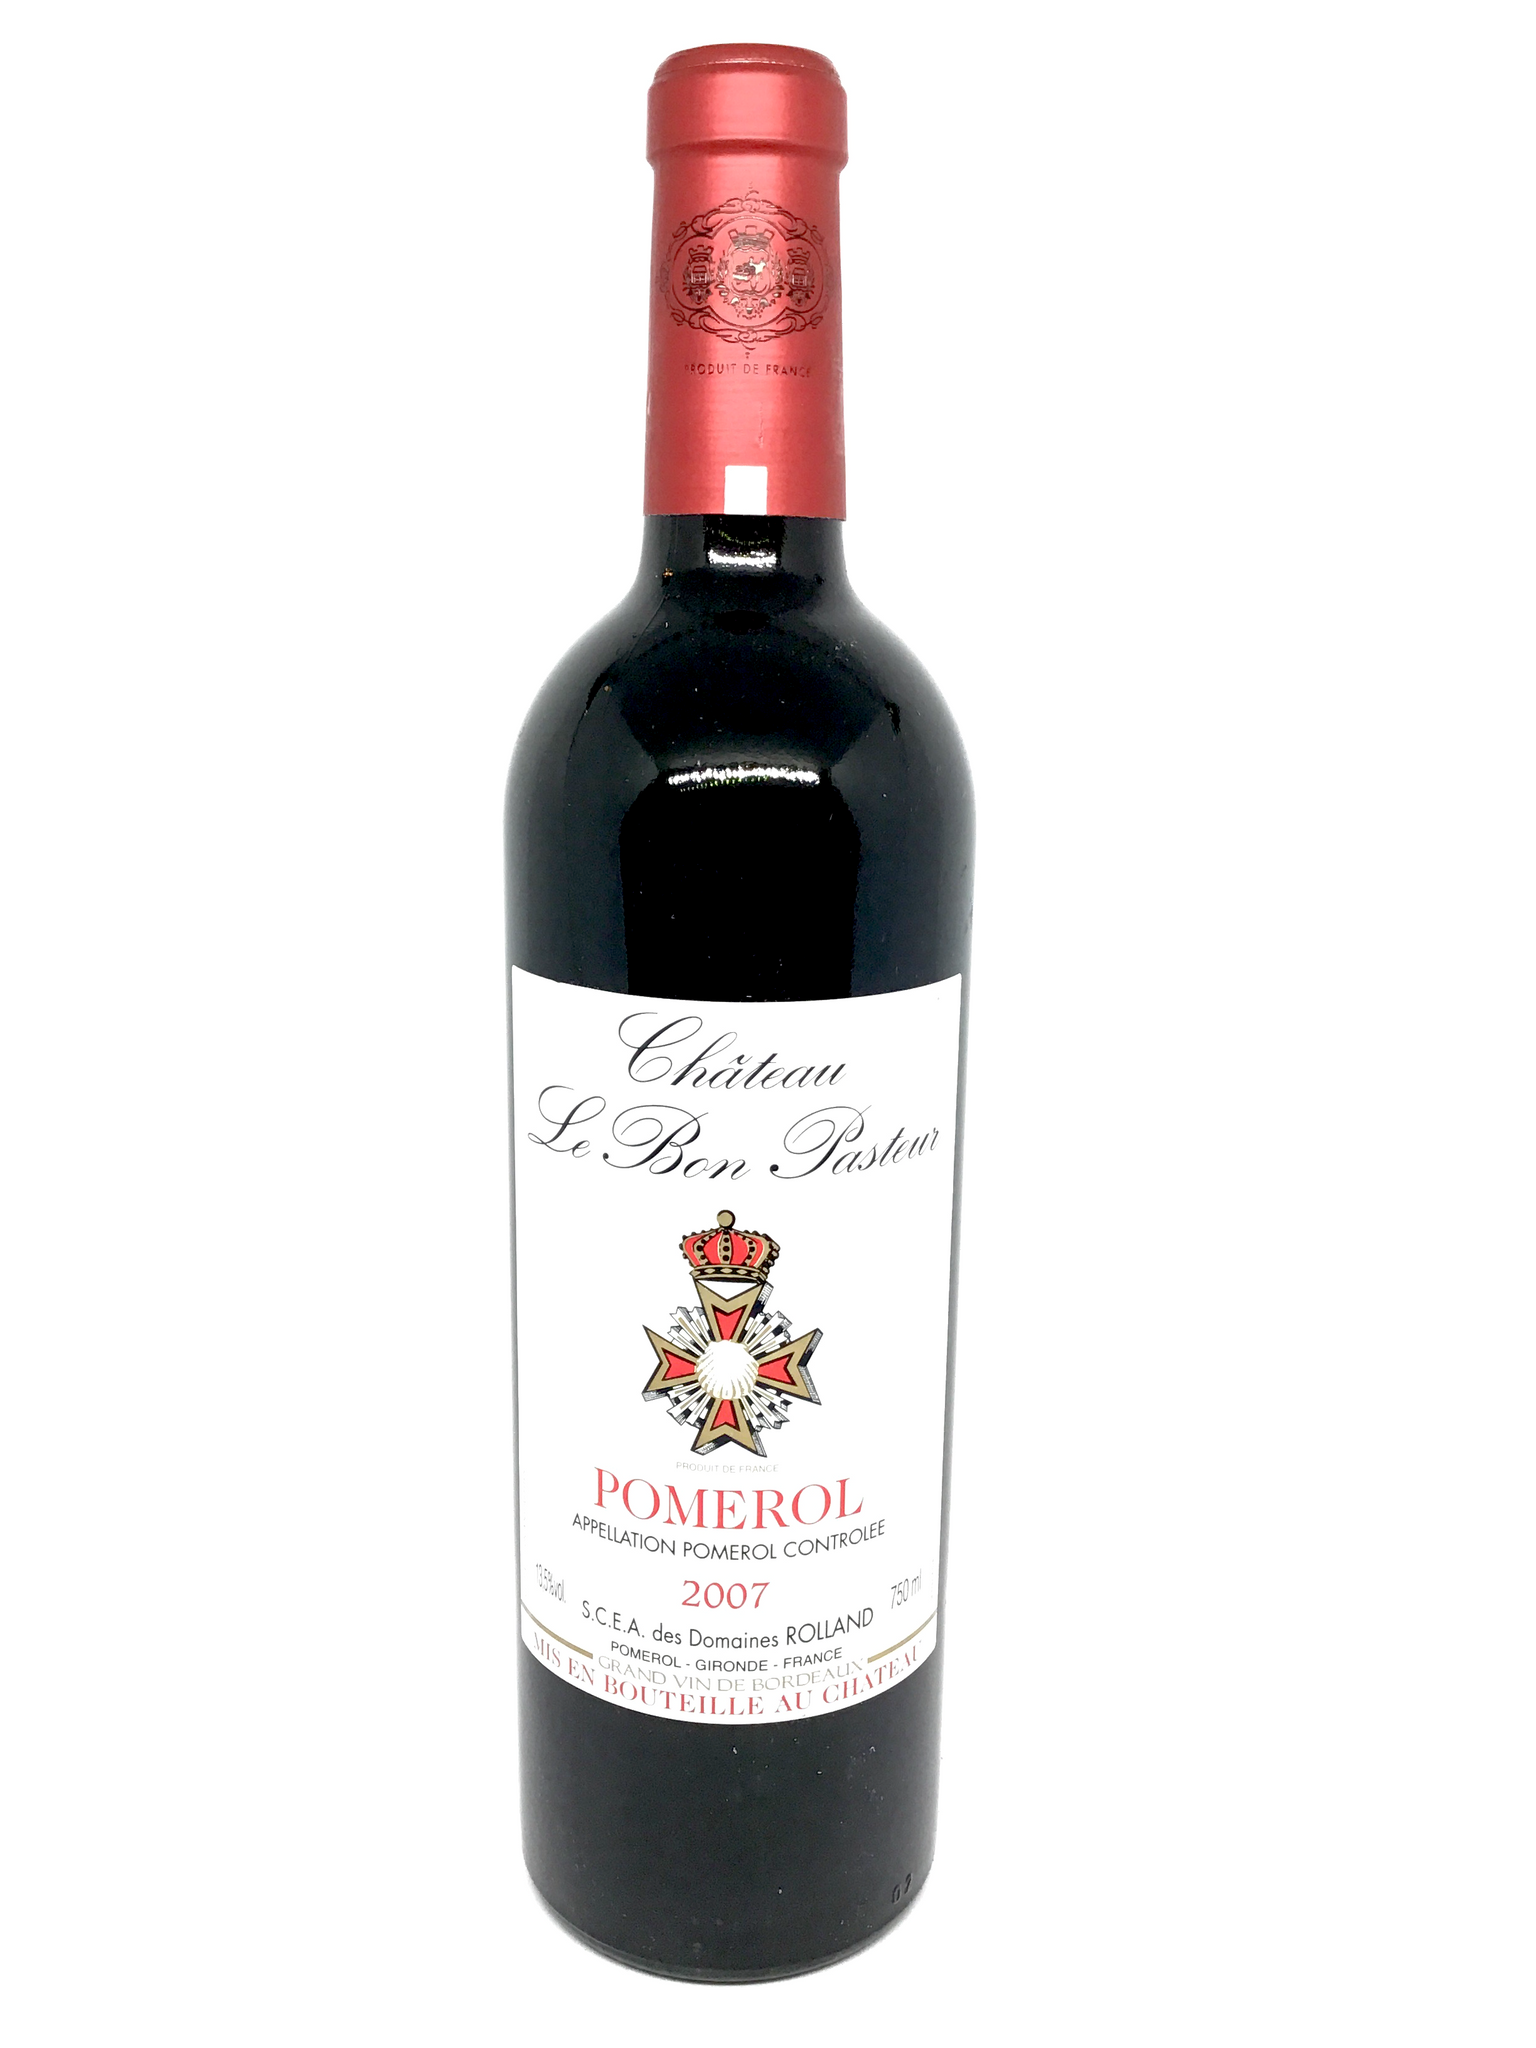 Château Le Bon Pasteur, Right Bank Blend, Pomerol, Bordeaux, France, 2007